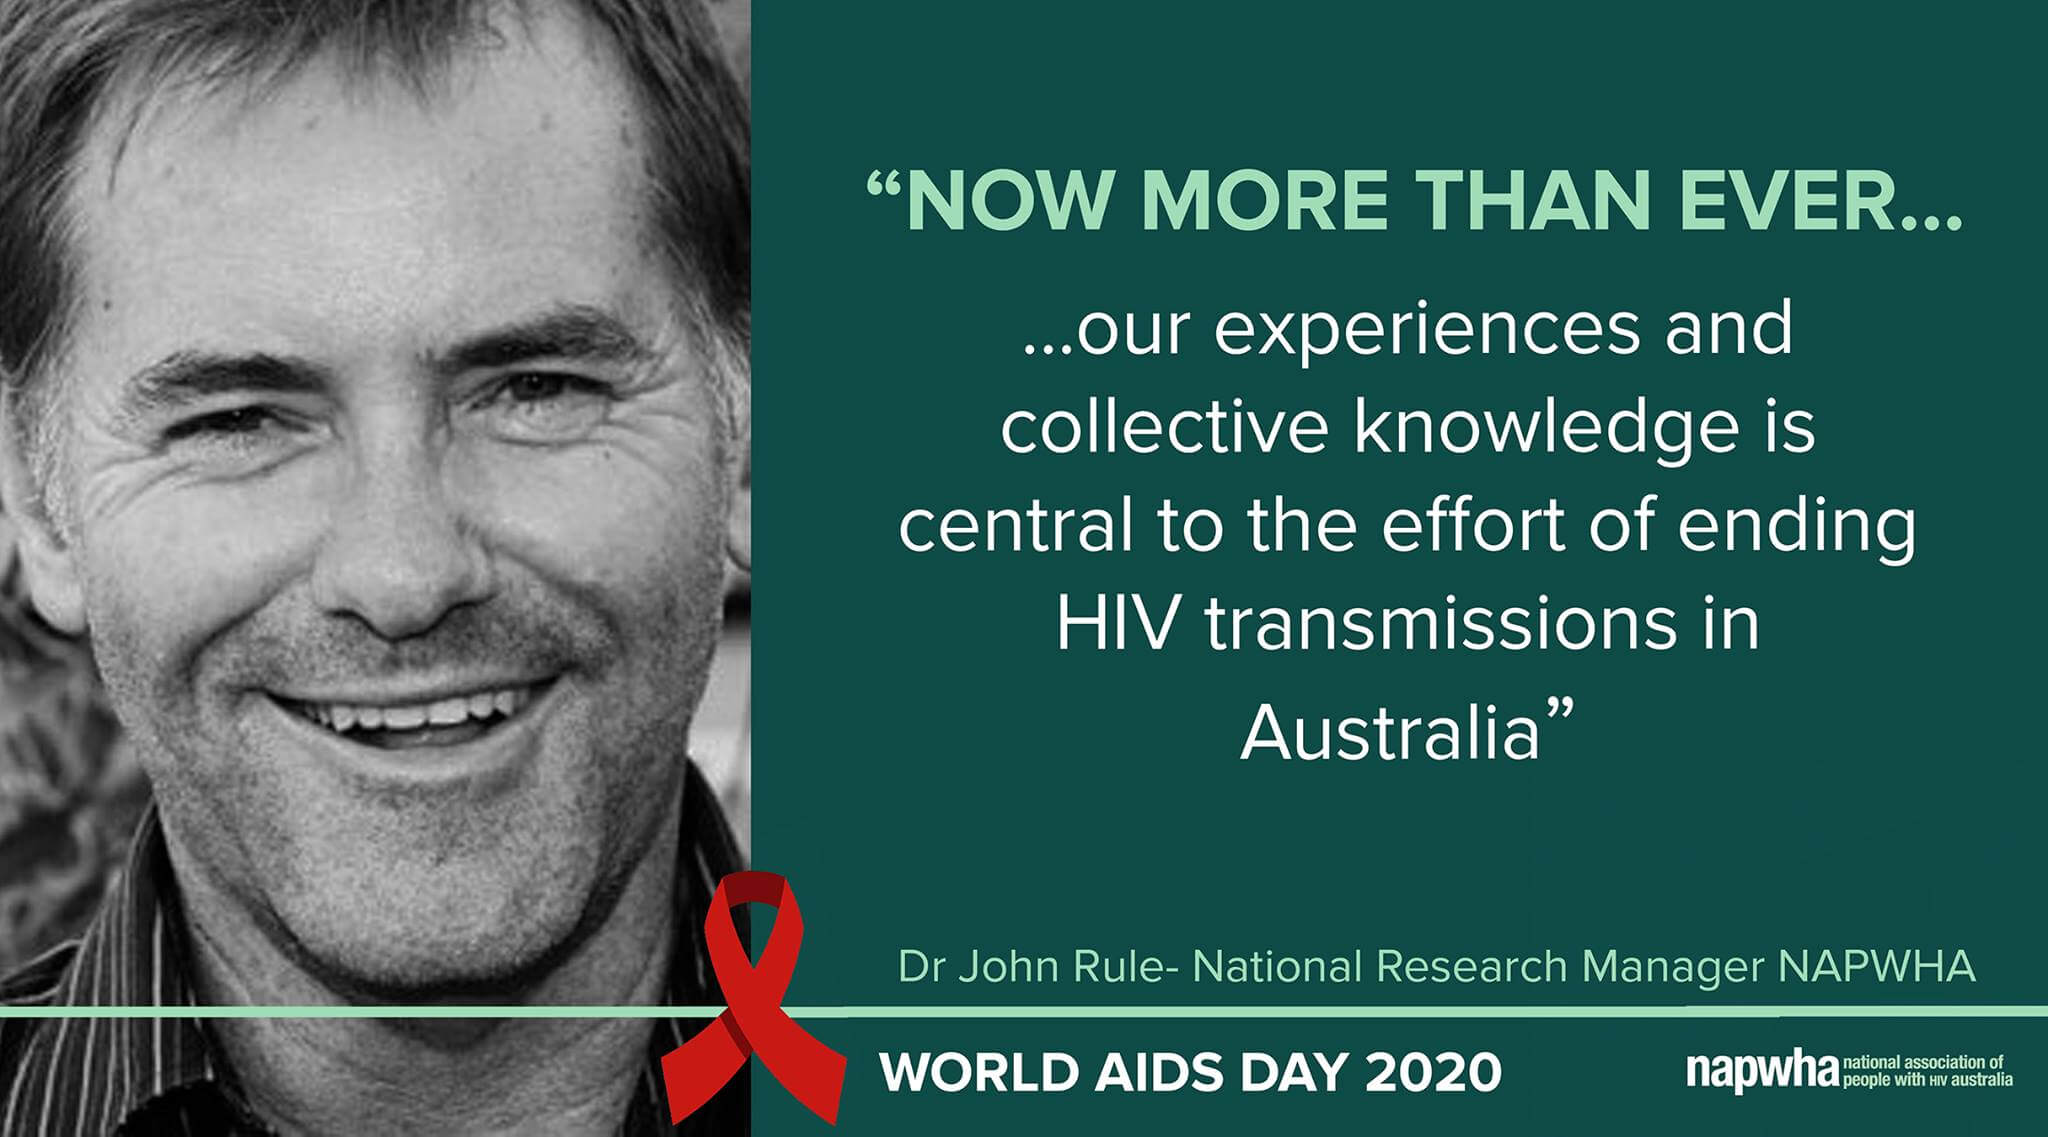 Dr John Rule, National Research Manager at NAPWHA Board provides a World AIDS Day 2020 message